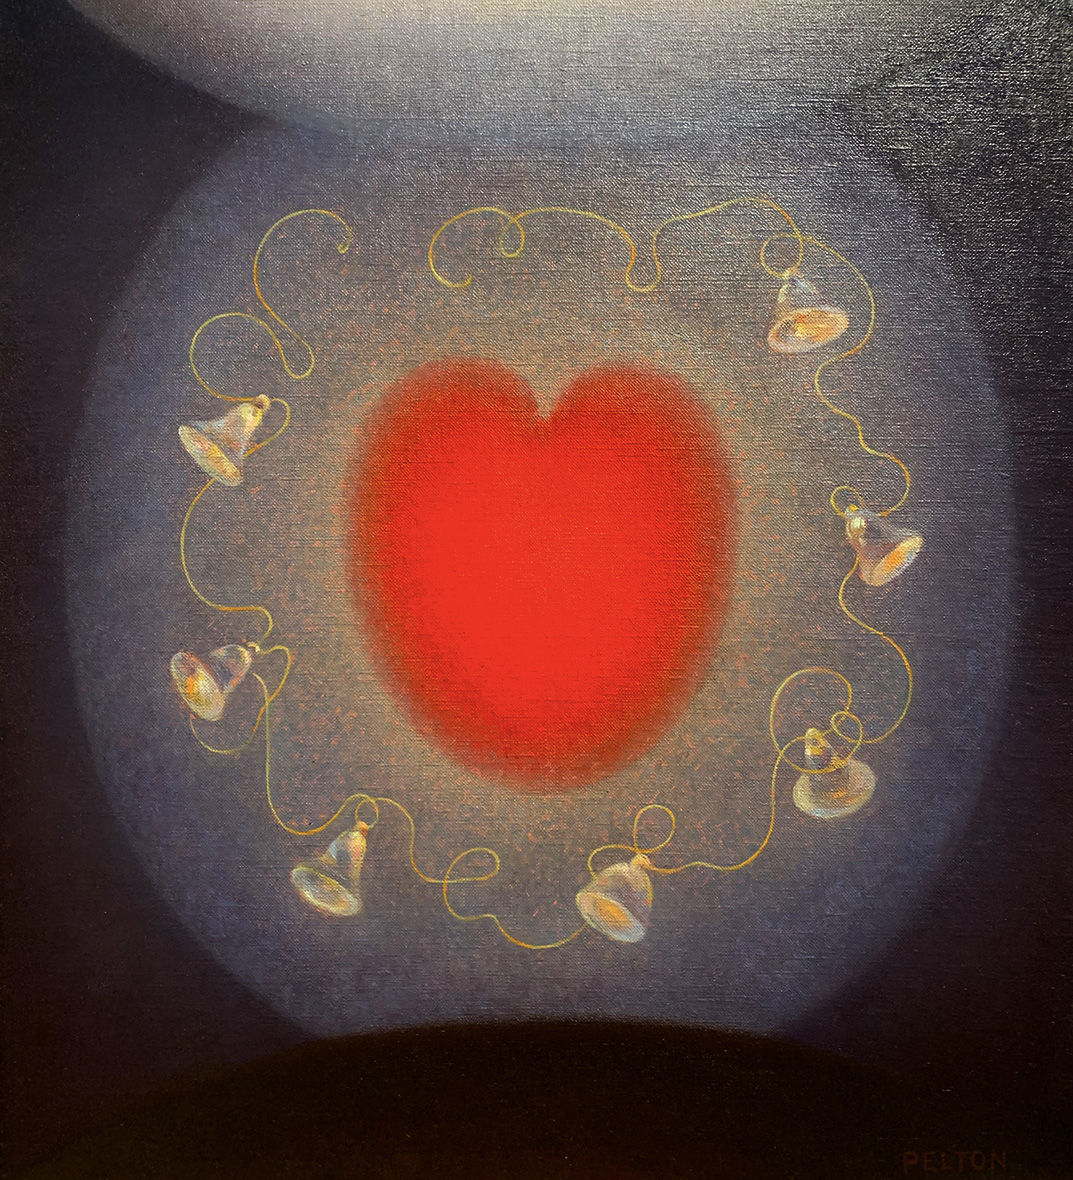 Agnes Pelton Painting of Heart in the Hilbert Museum